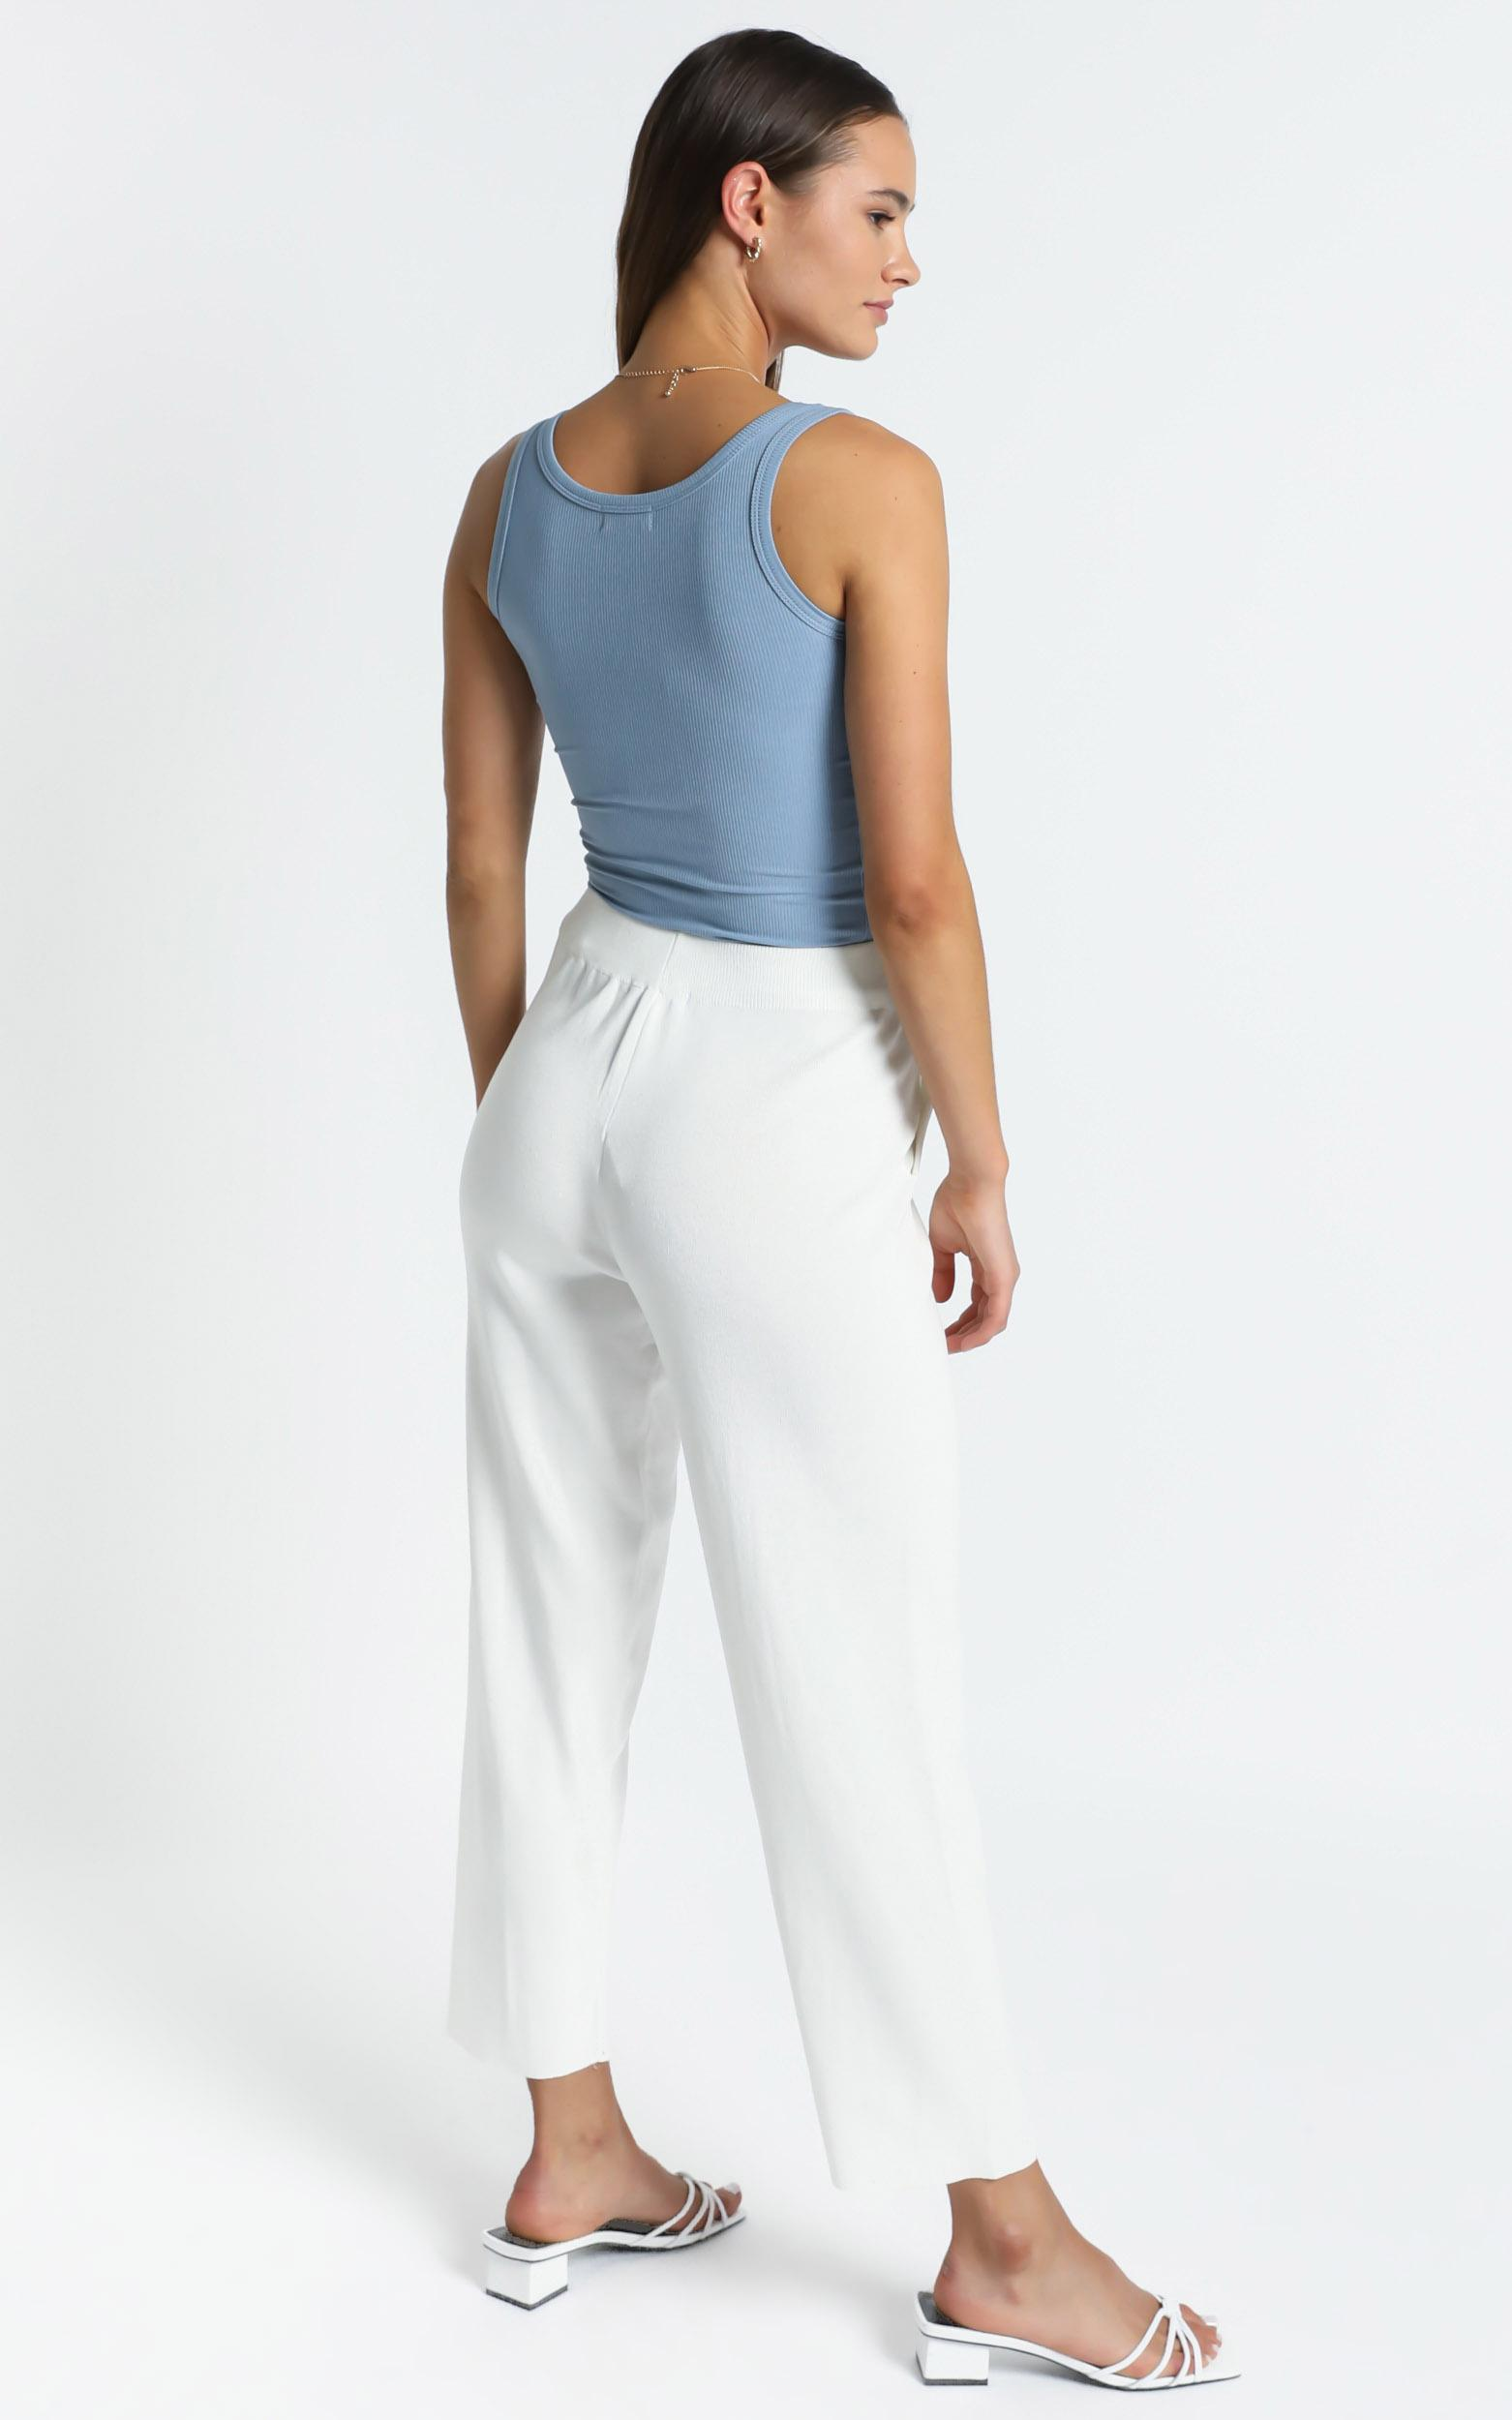 Bertie Knit Pants in White, White, hi-res image number null